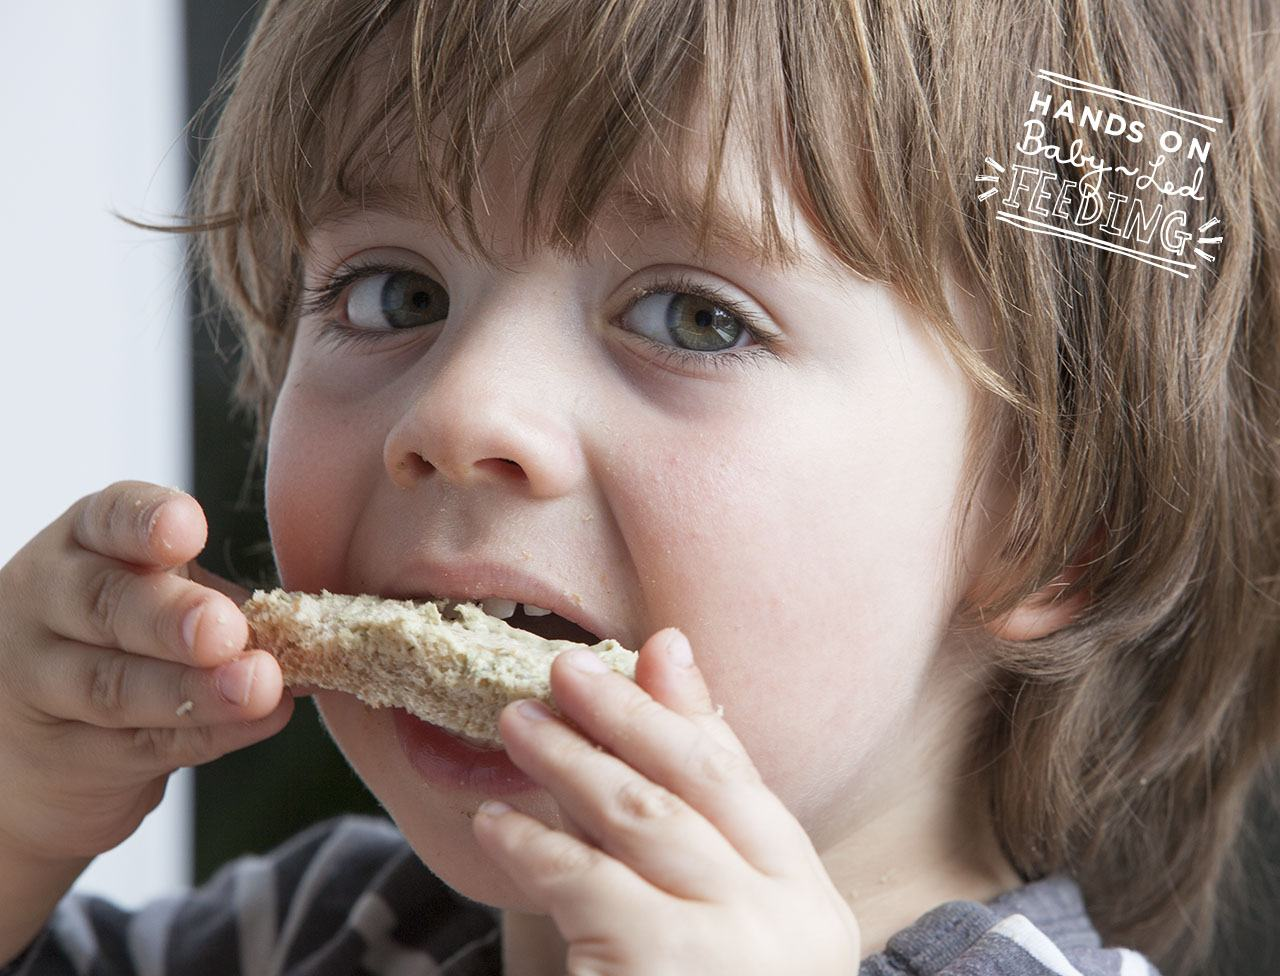 Baby led weaning mackerel pate with salad. Oscar eating pate image. This is a perfect baby lunch recipe packed with Omega-3 rich fish and full of vitamins. Lunch ideas for baby led weaning that are easy and quick. Yummy finger foods for babies. BLW lunch finger food recipe.